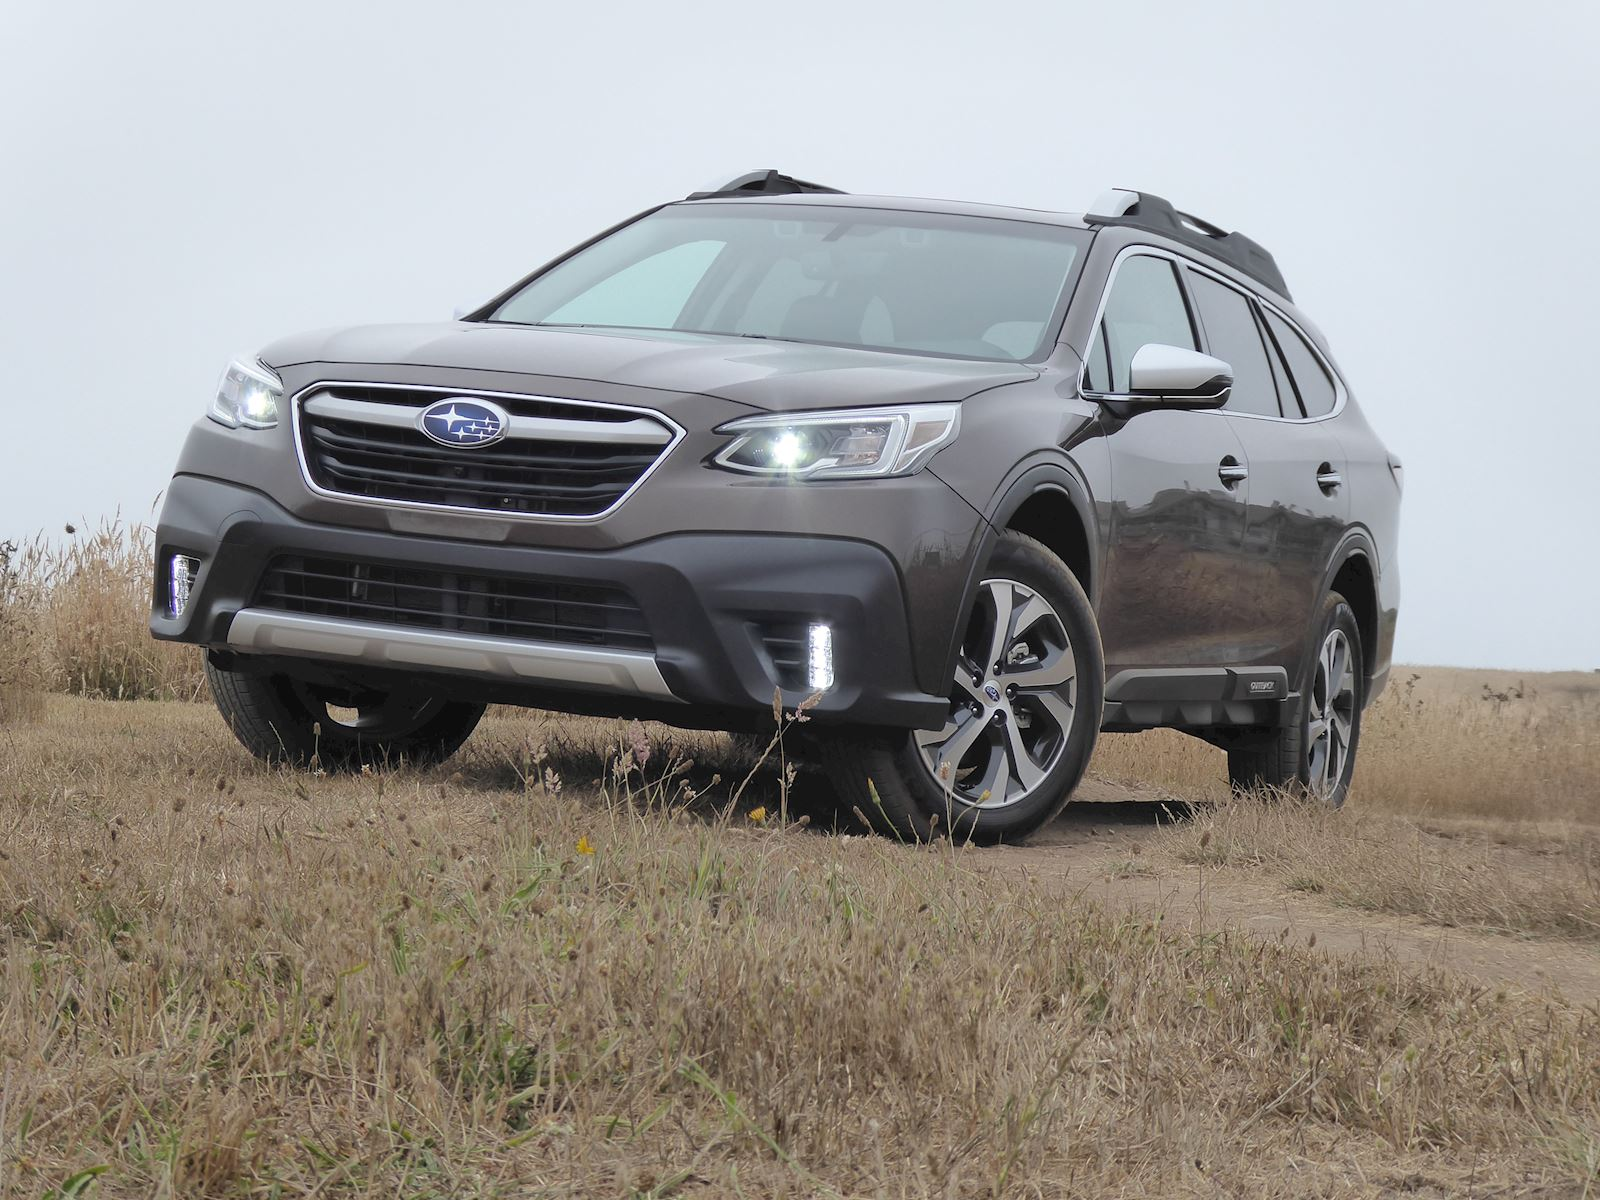 2020 Subaru Outback front view photo